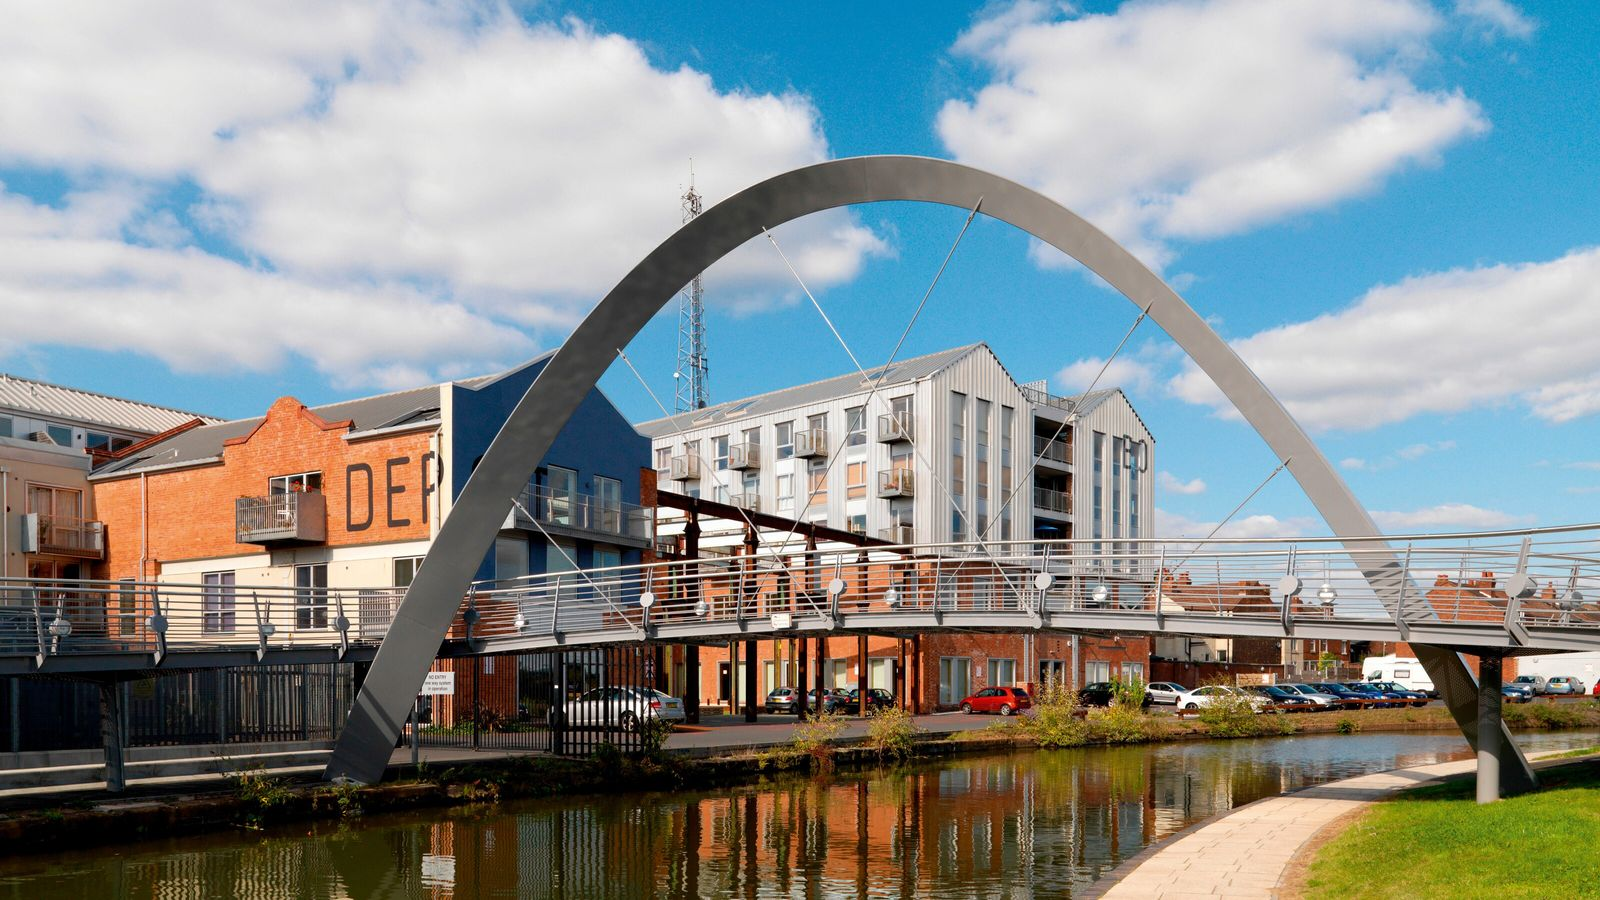 Electric Wharf by Coventry Canal is home to work lofts, apartments and low-energy homes.